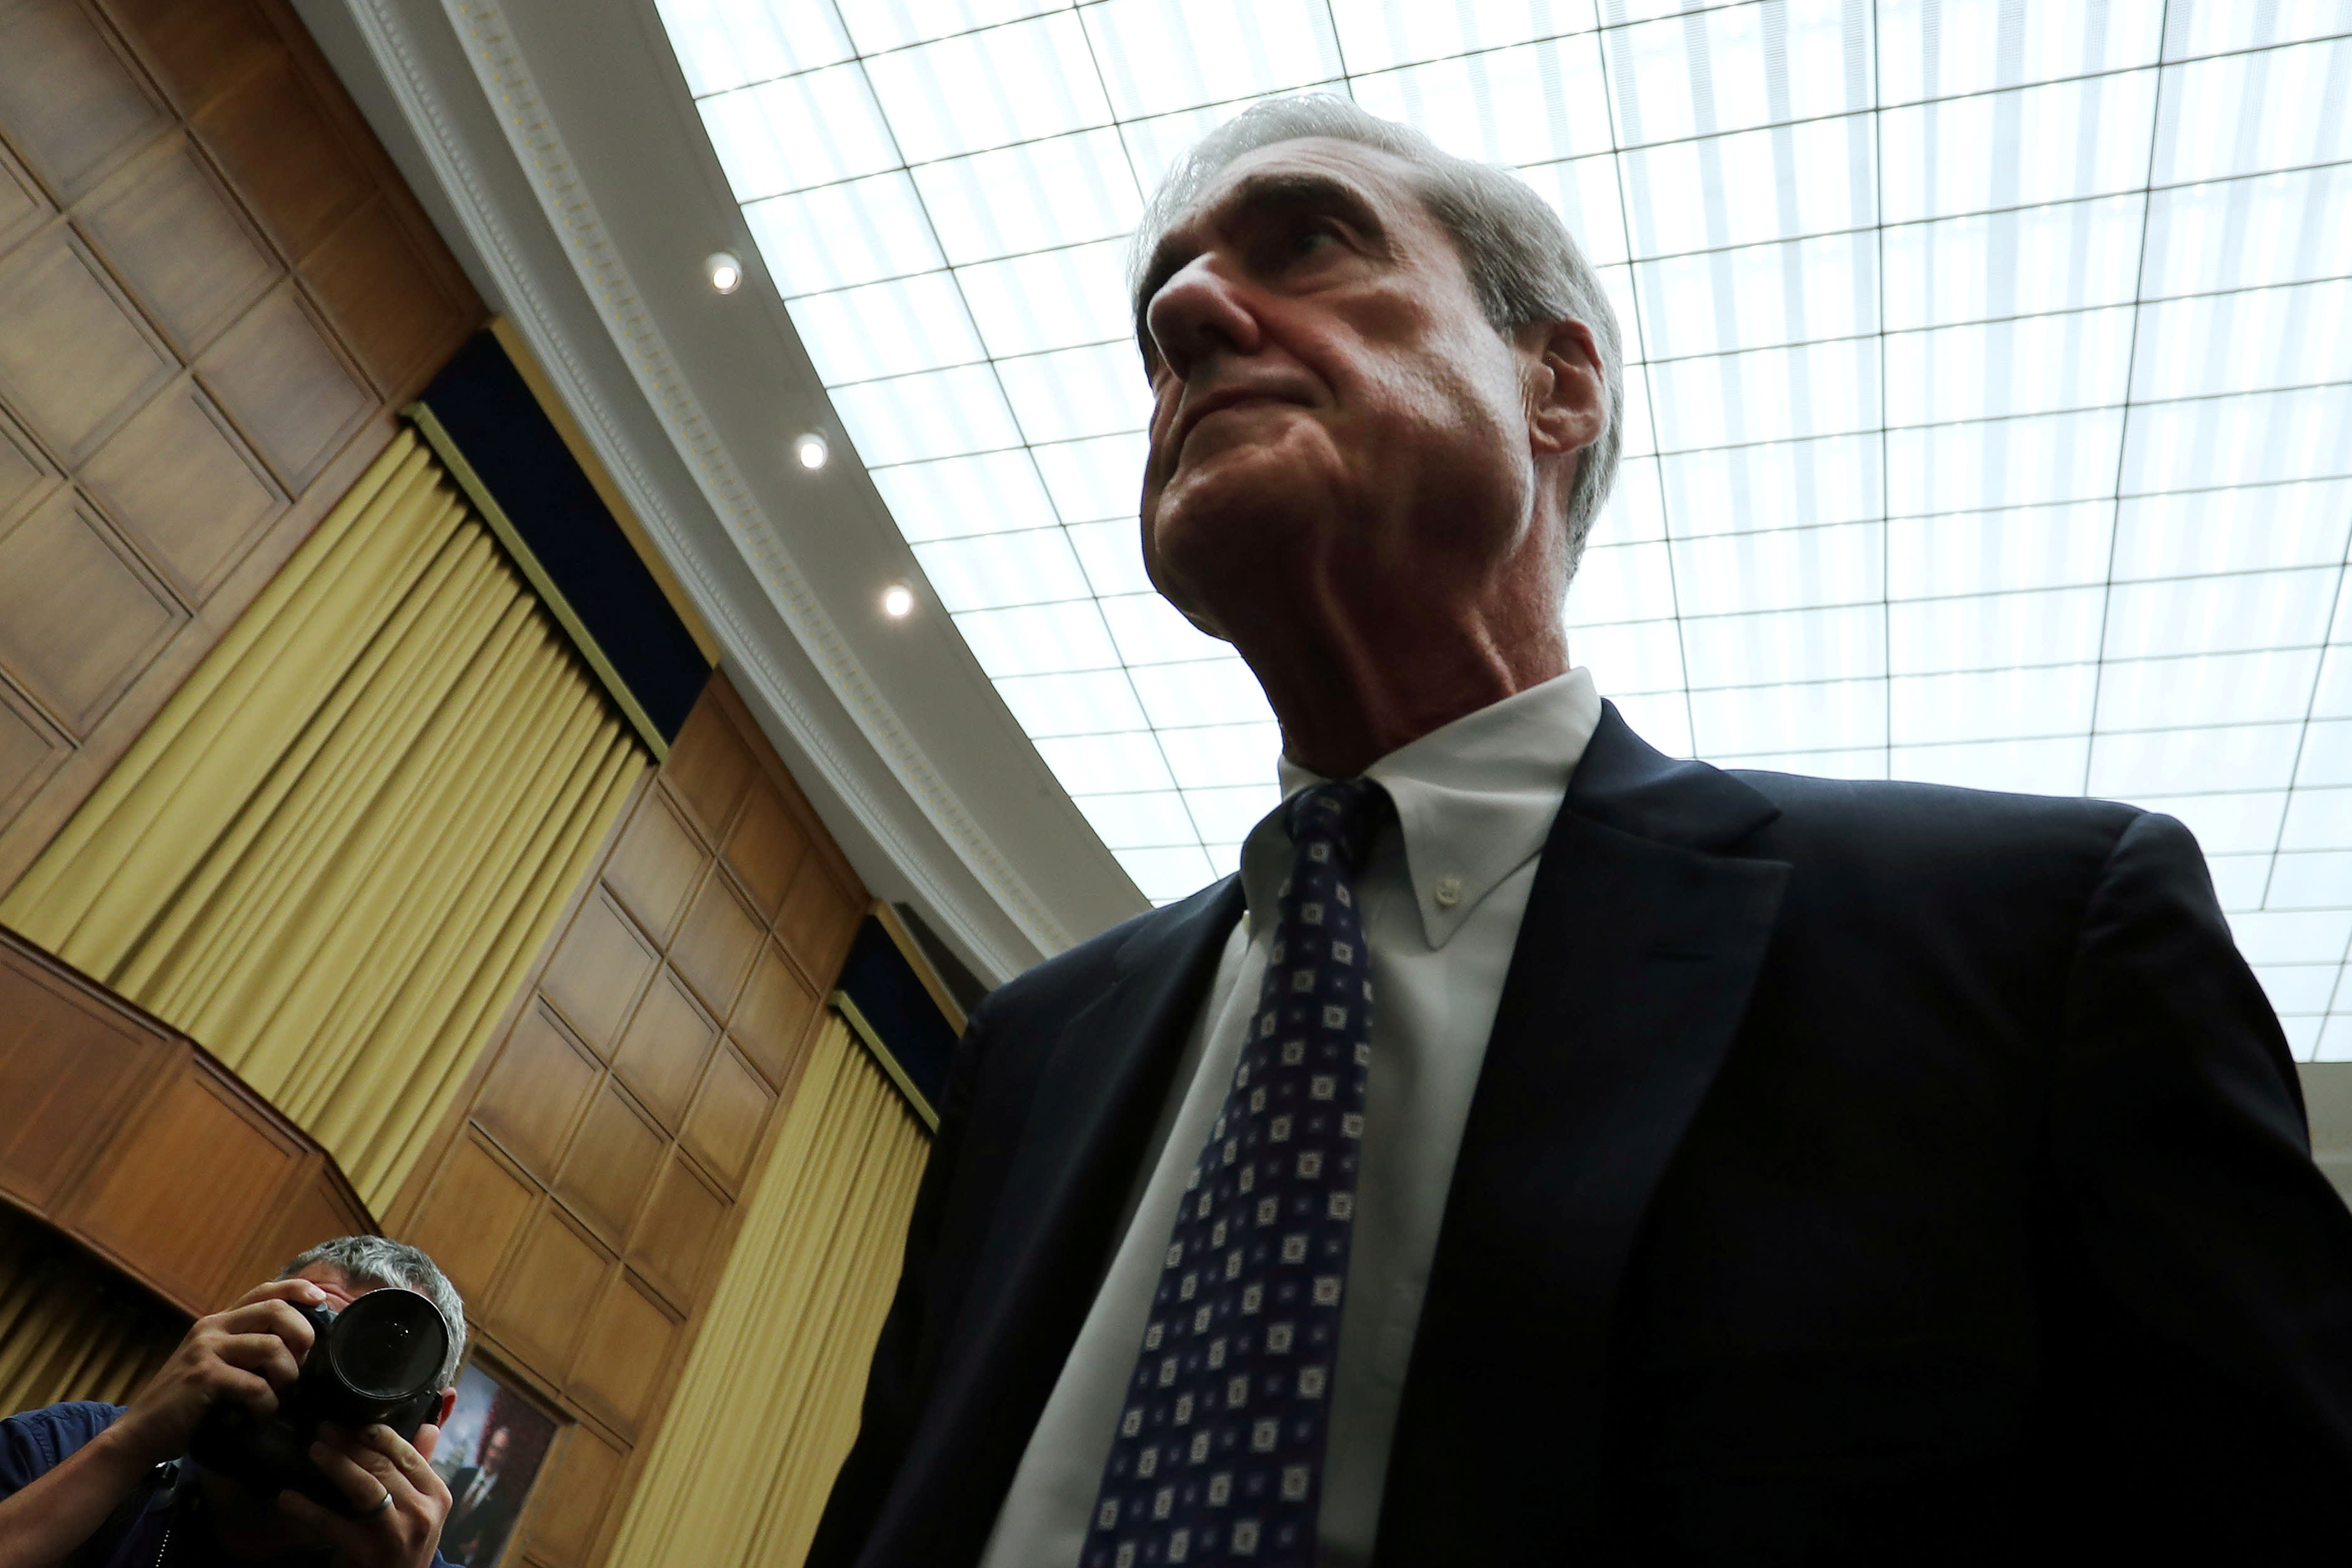 Robert Mueller's Russia probe cost nearly $32 million in total, Justice Department says